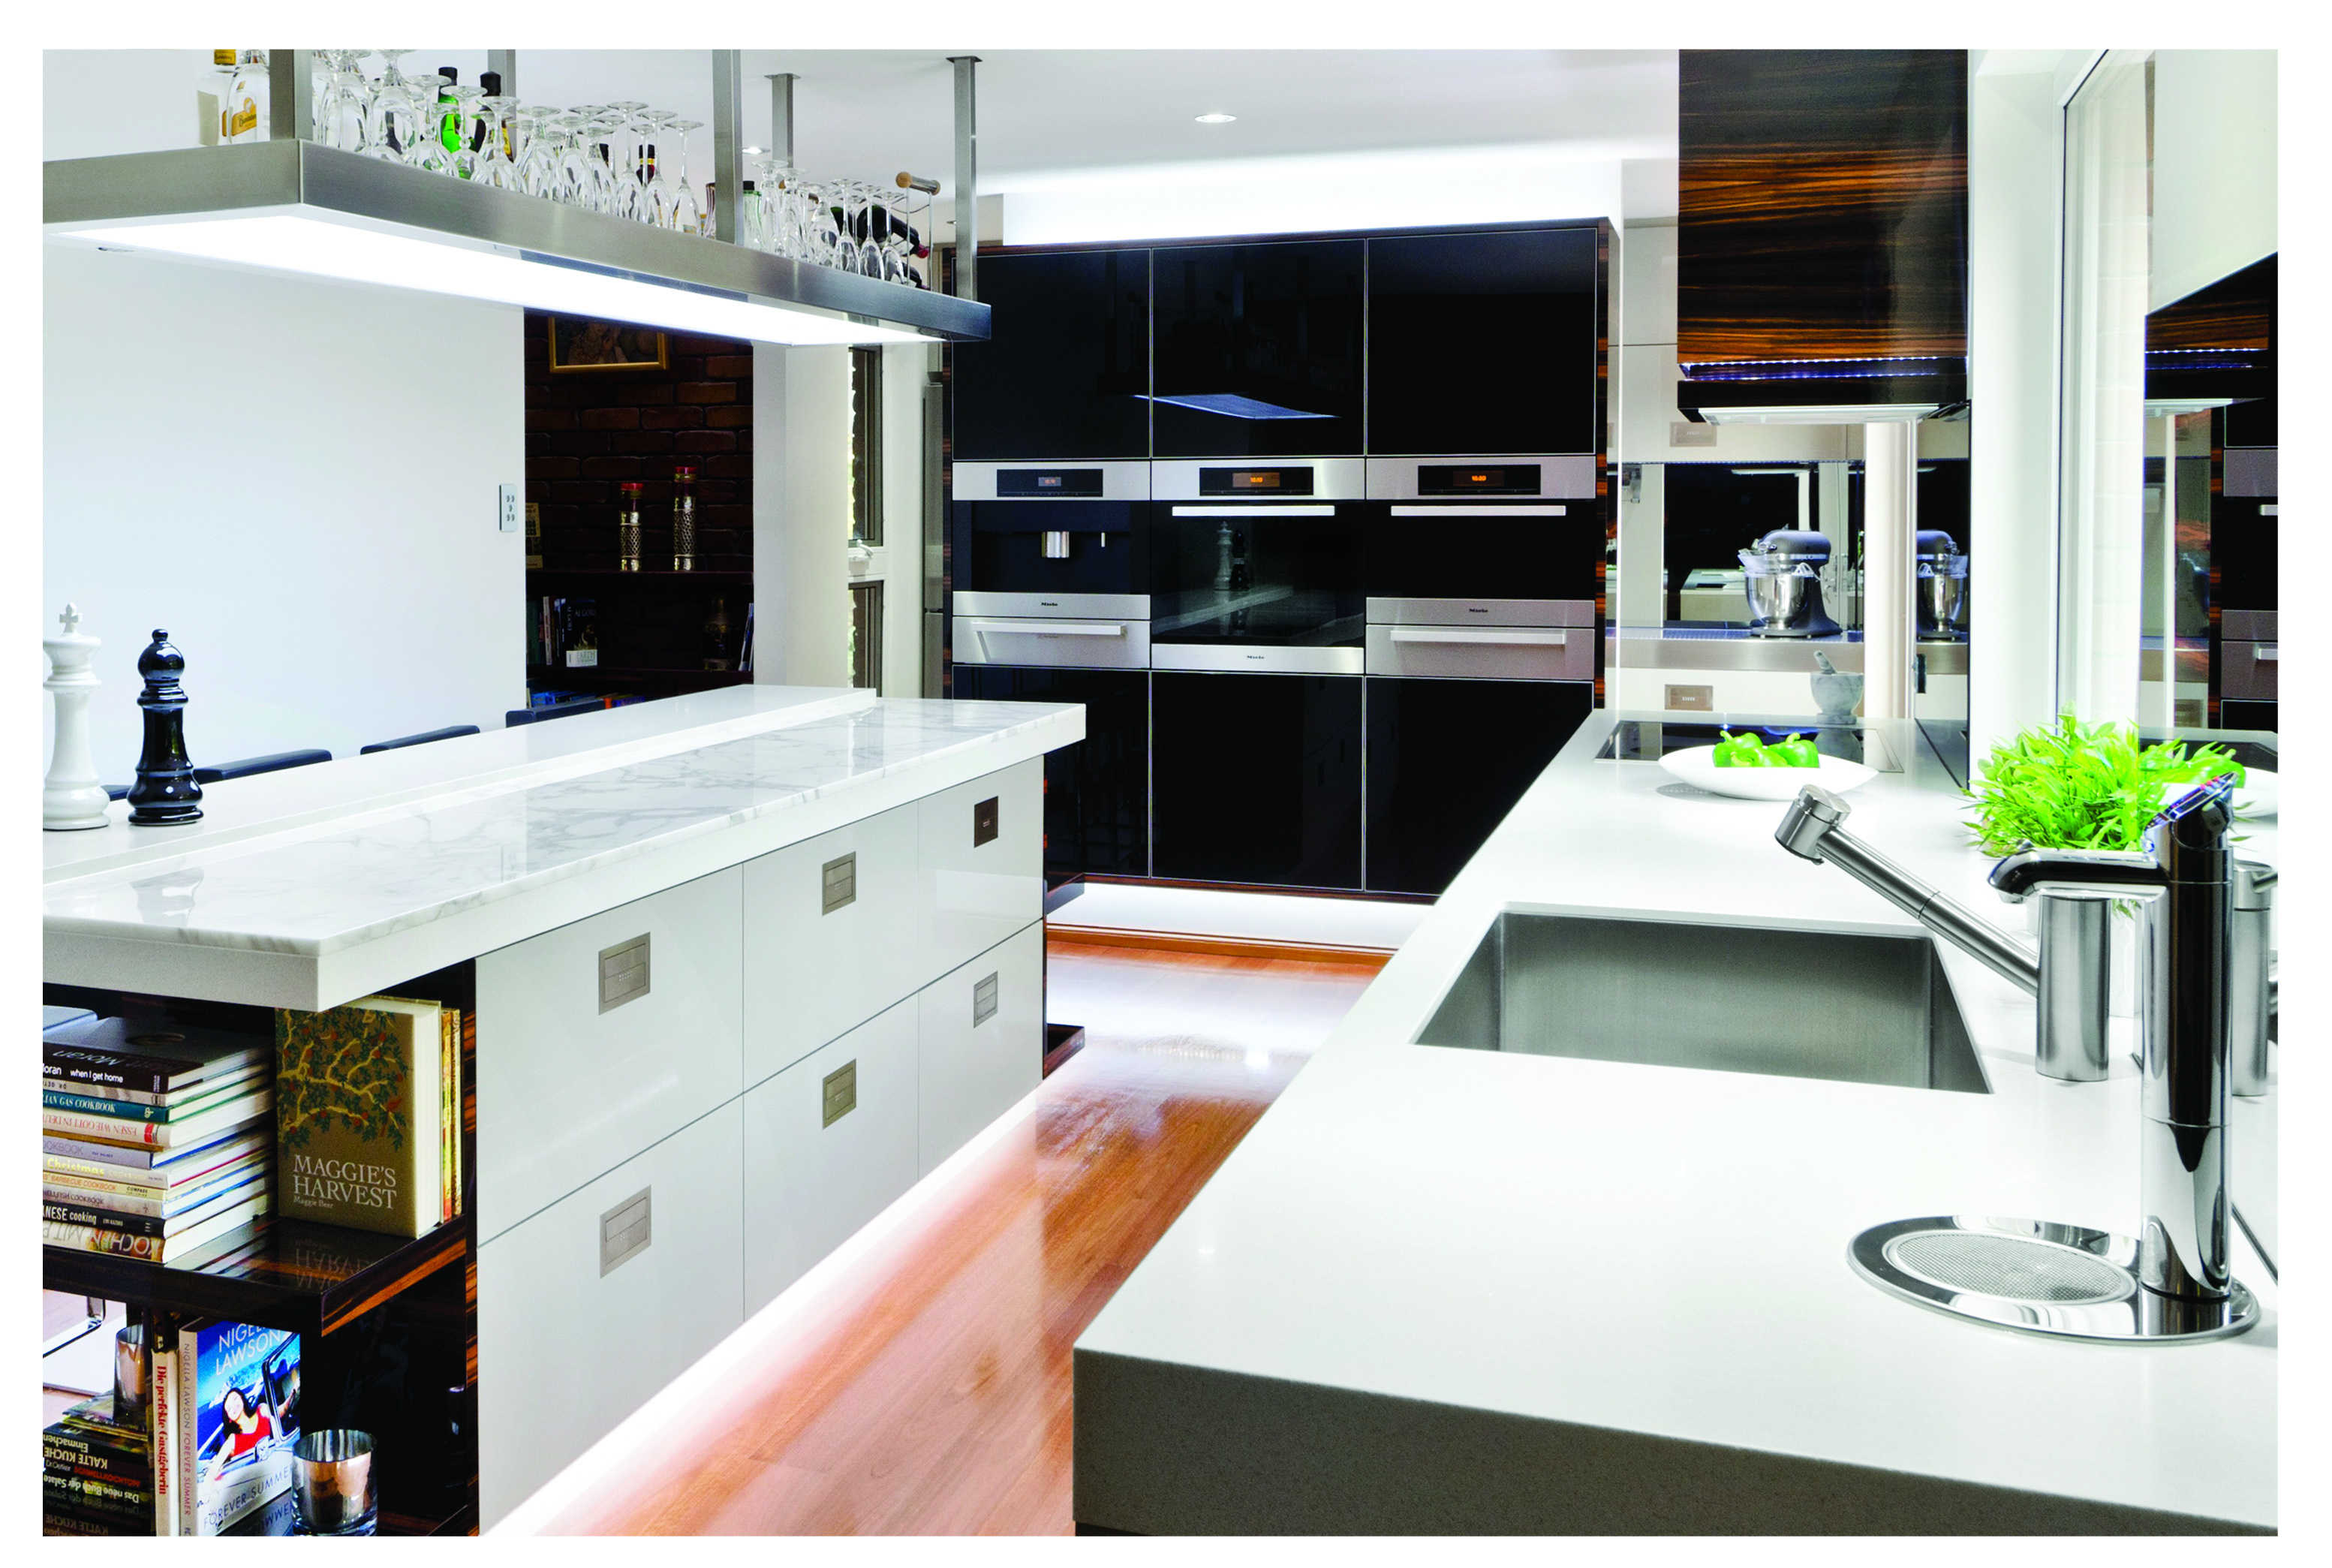 Kitchen Appliance Store Brisbane